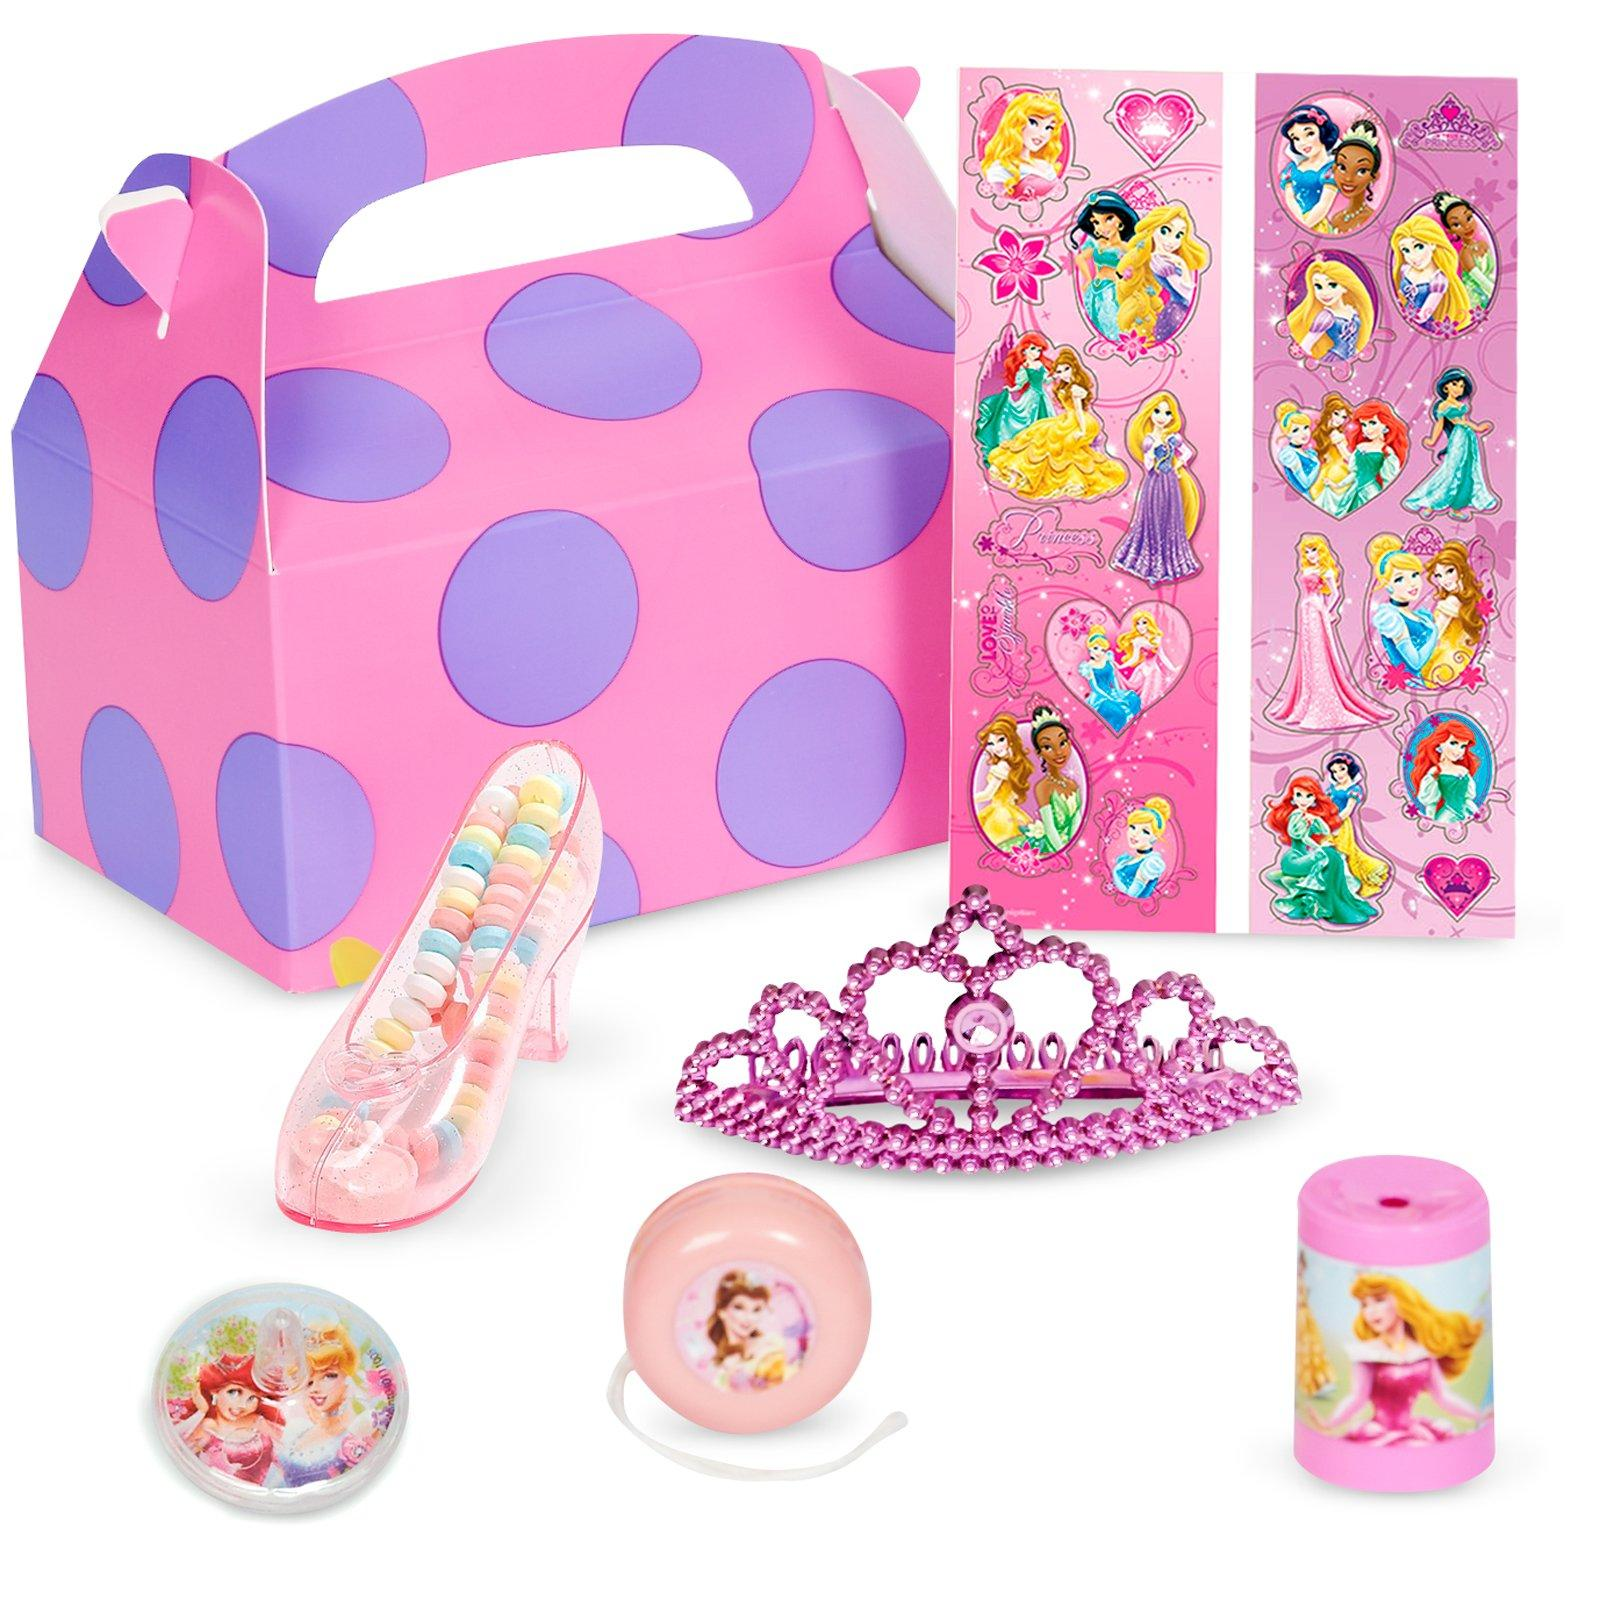 Disney Very Important Princess Dream Party - Party Favor Box